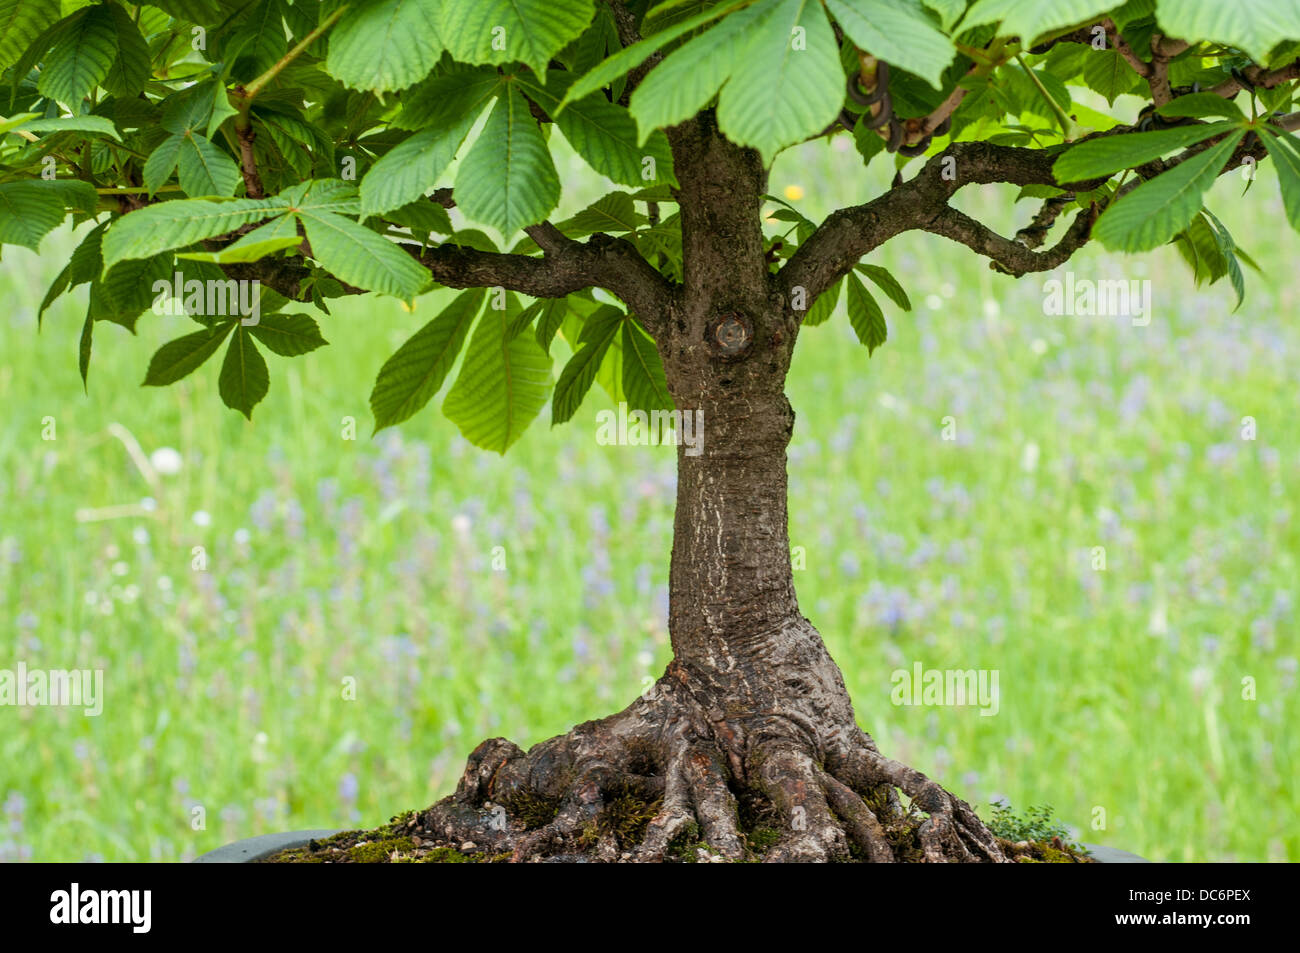 Old horse chestnut tree as bonsai with old roots - Stock Image